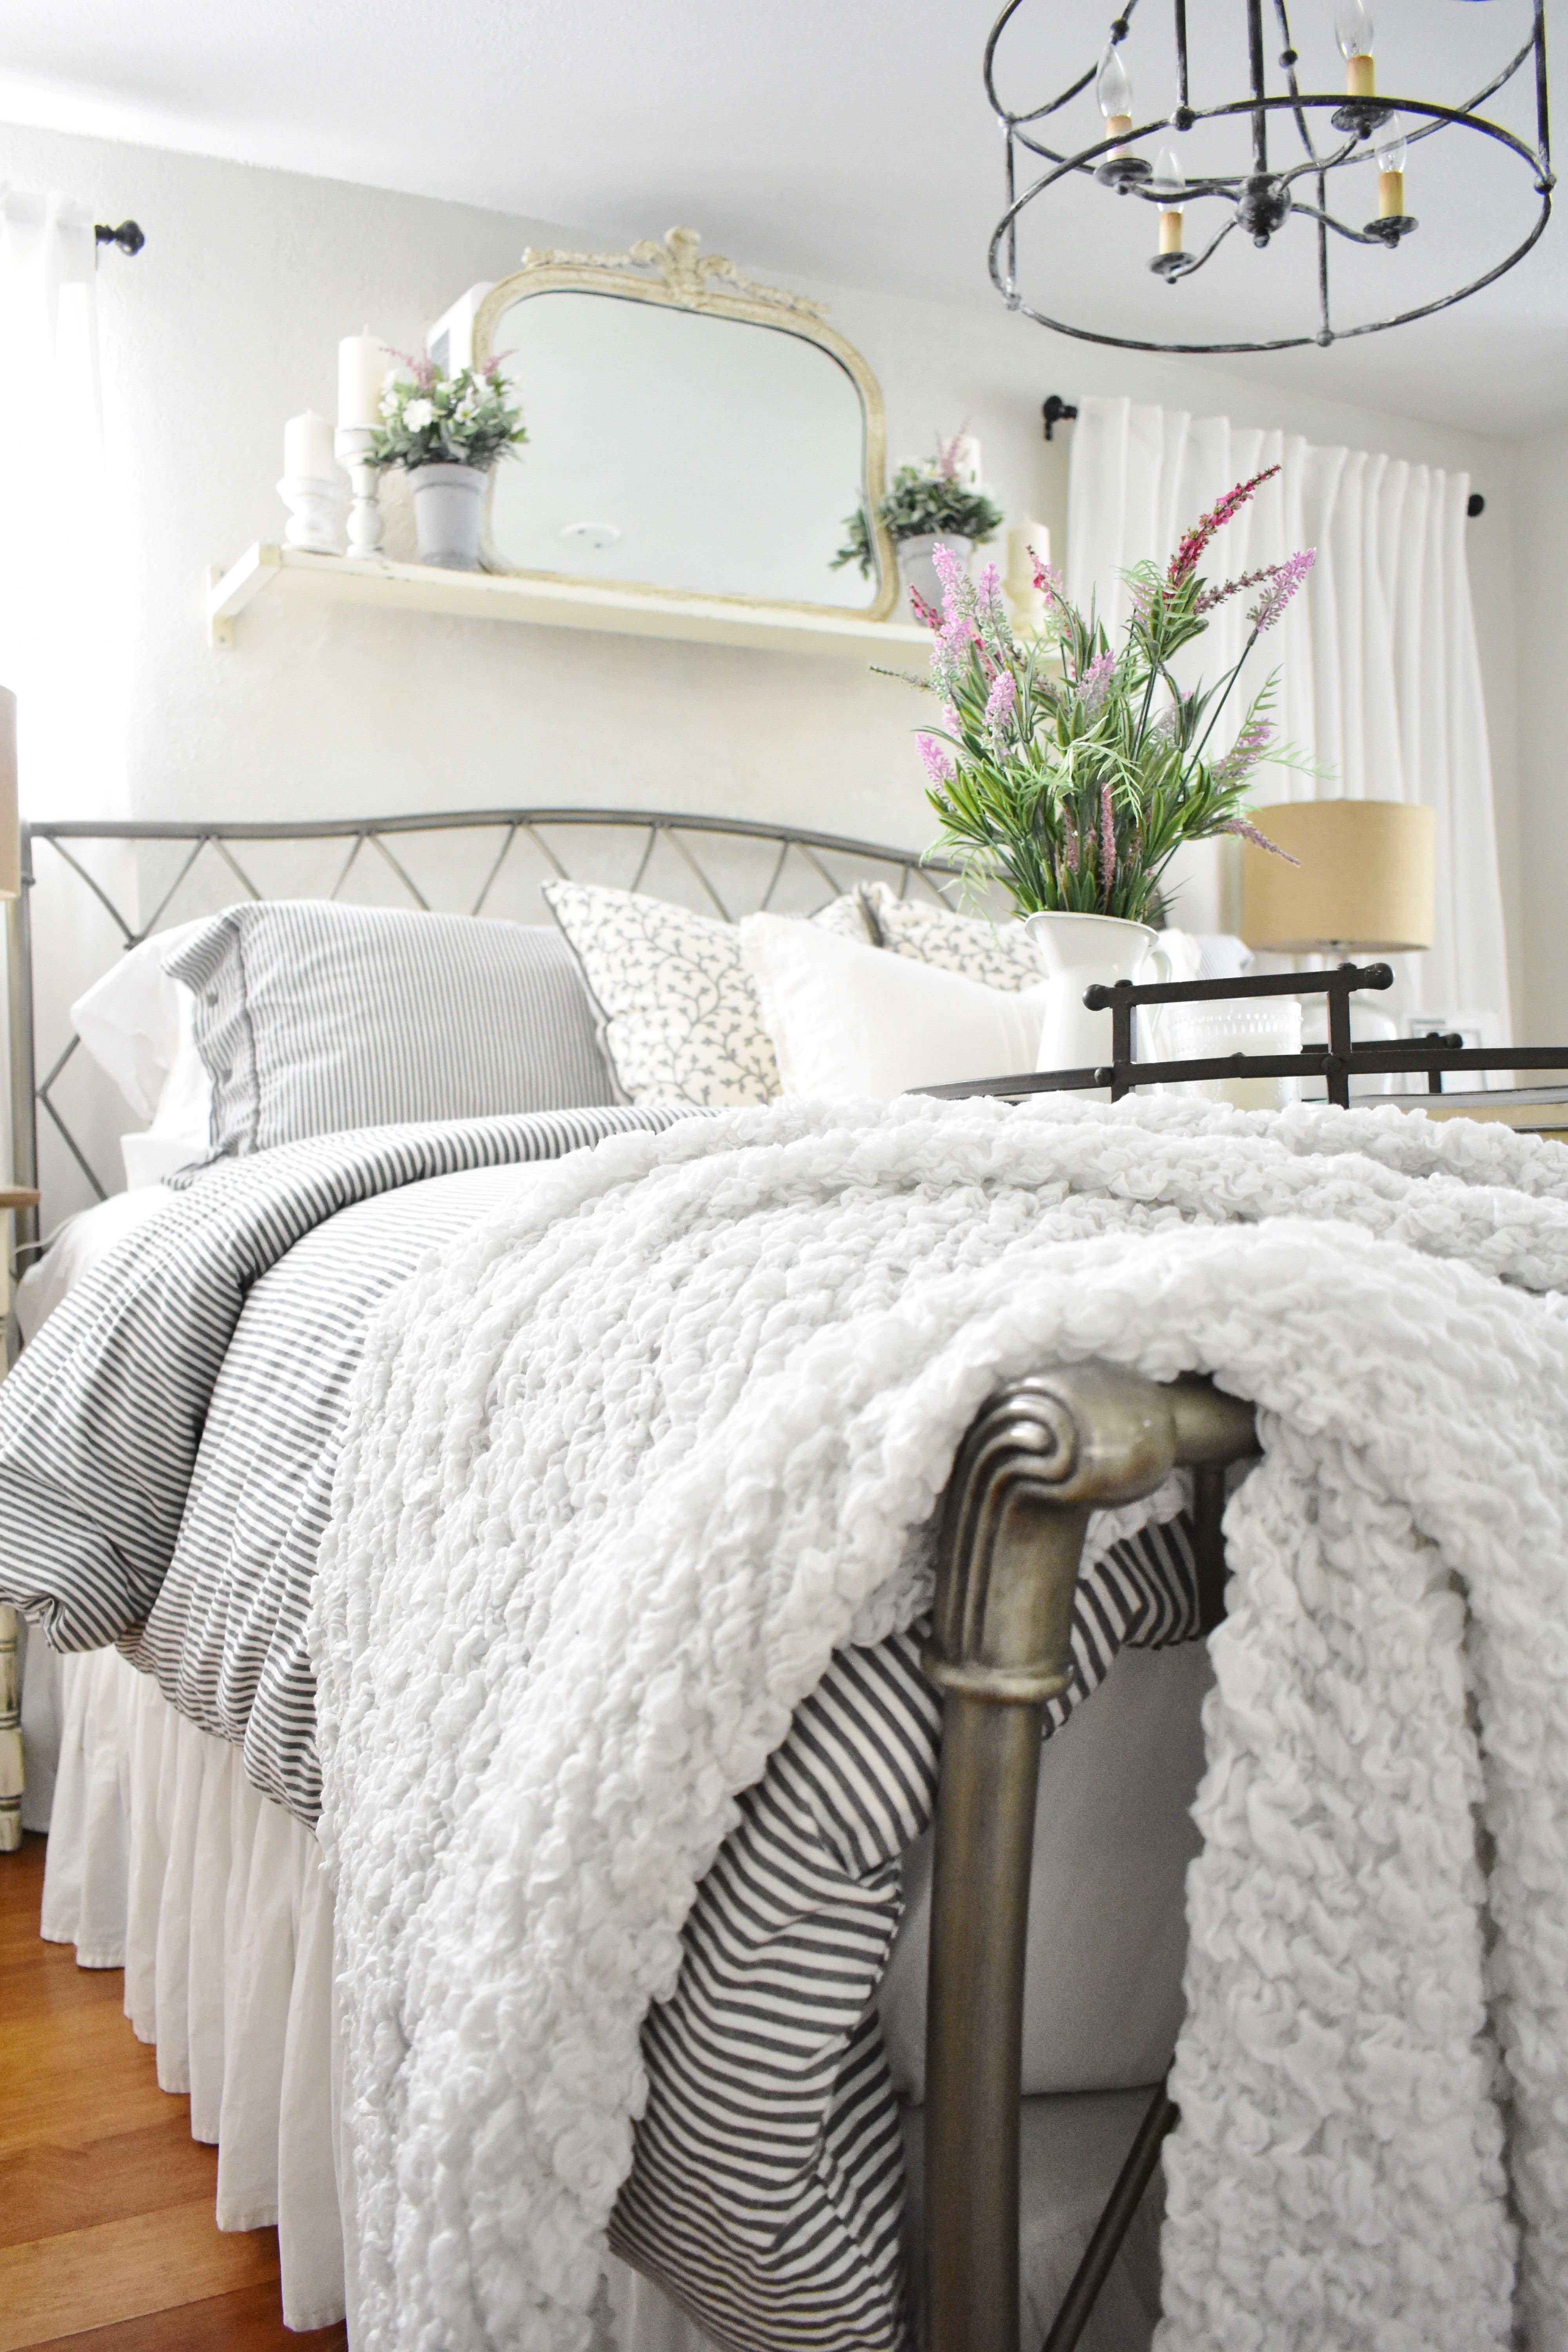 Best Neutral Master Bedroom Spring Decor Bedroom Pinterest With Pictures